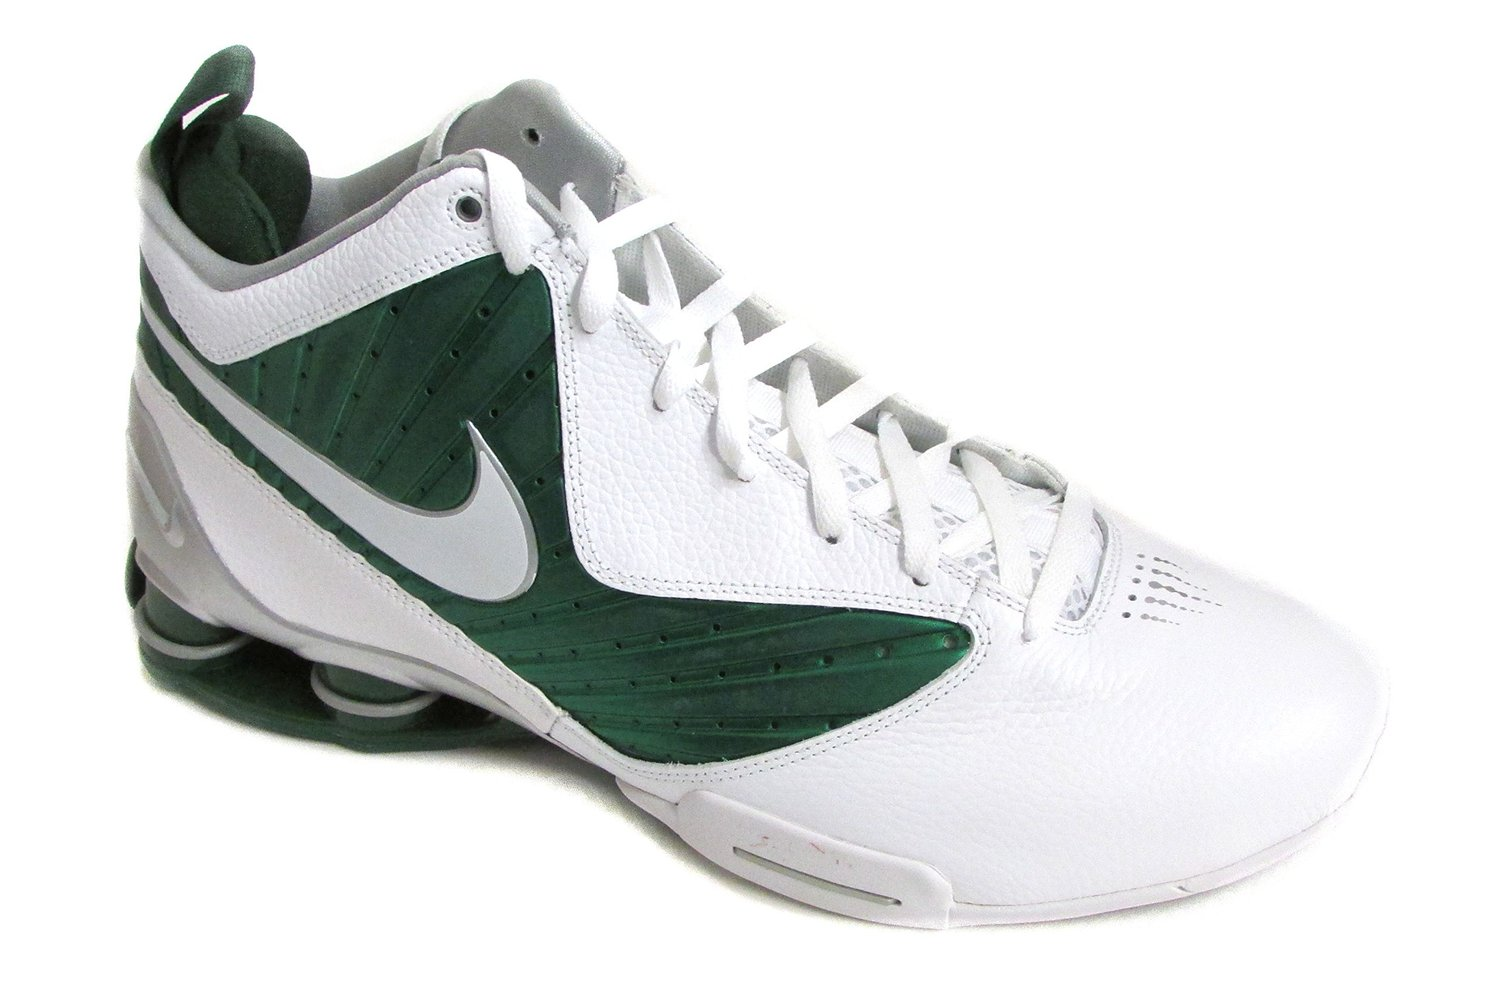 new products b897c 44c01 Get Quotations · Nike Men s Shox BB Pro TB Basketball Shoes White Green